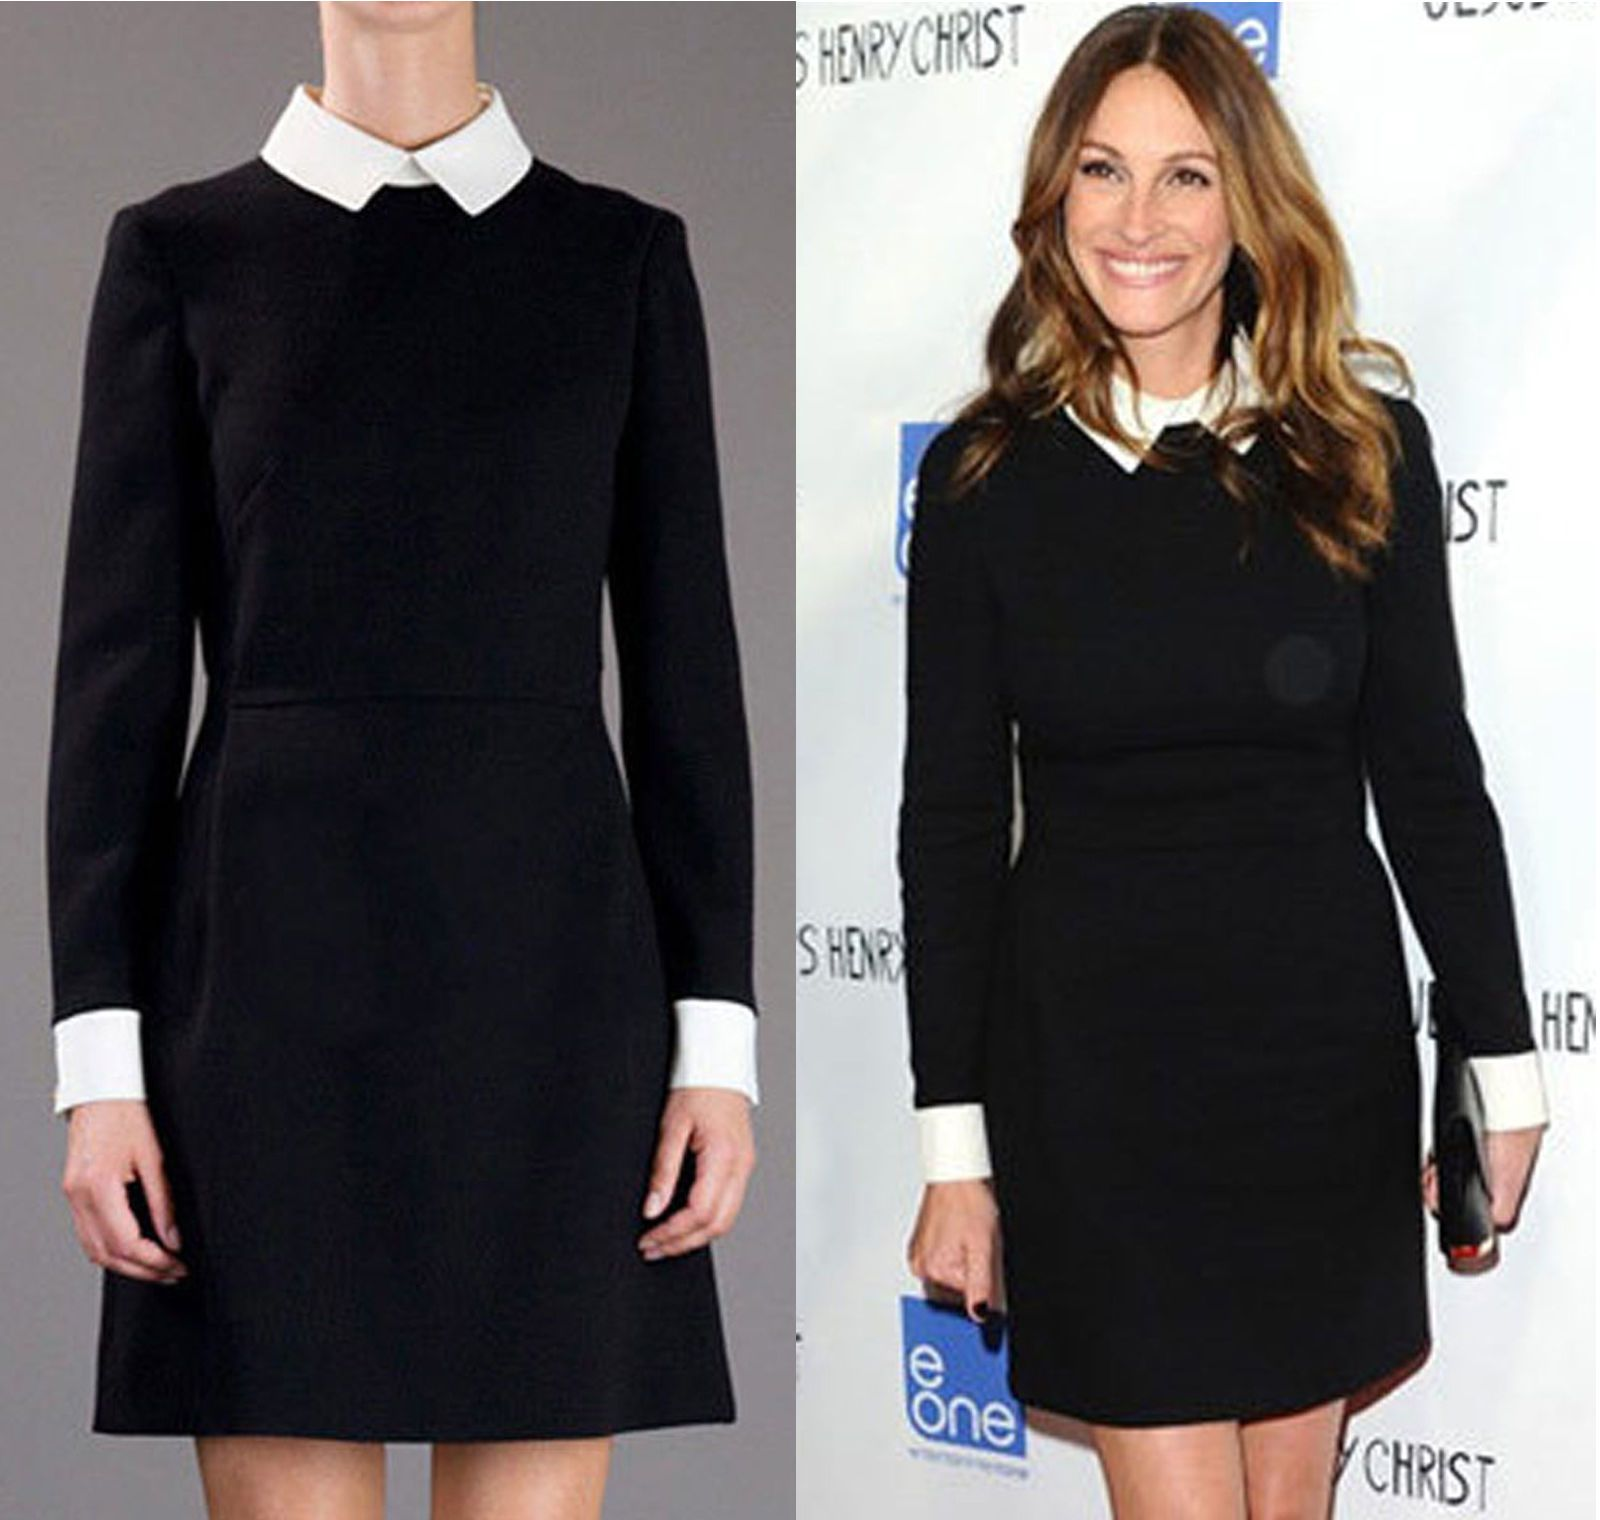 Black dress with white peter pan collar - Details About Womens Black Block Shift White Collar Cuff Fit Long Sleeve Peter Pan Mini Dress